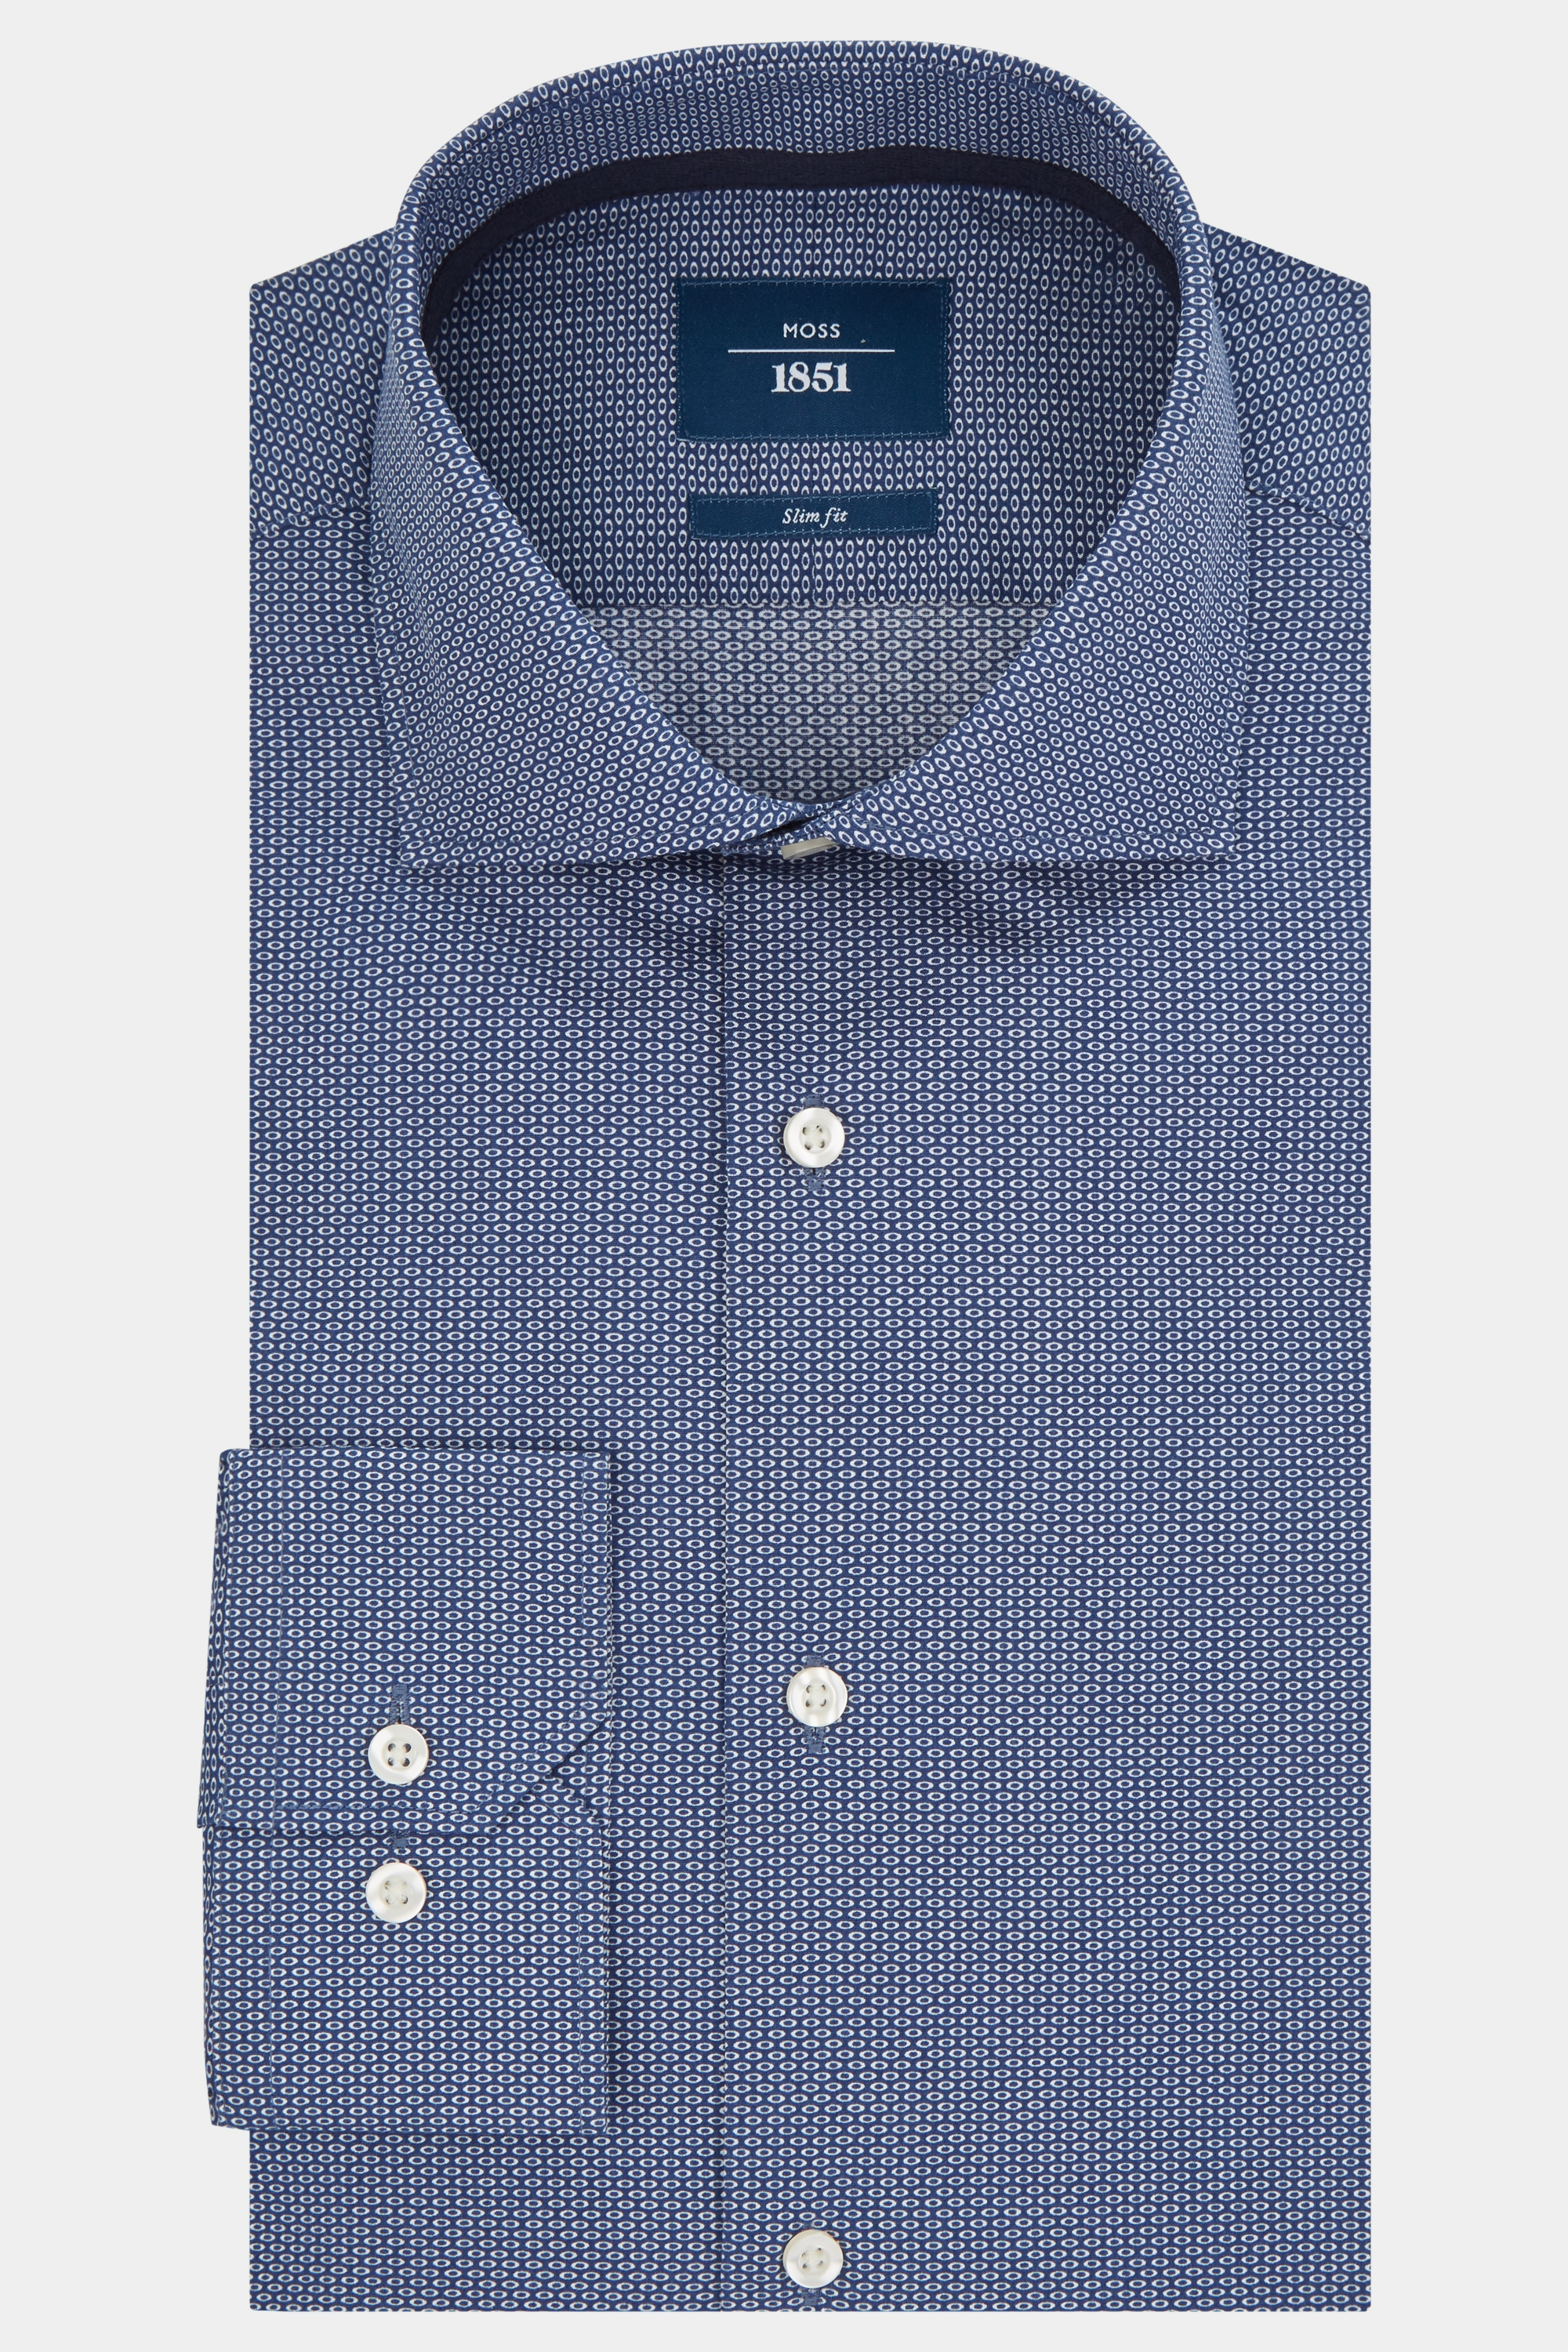 Moss Bros Moss 1851 Slim Fit Navy Single Cuff Oval Print Shirt